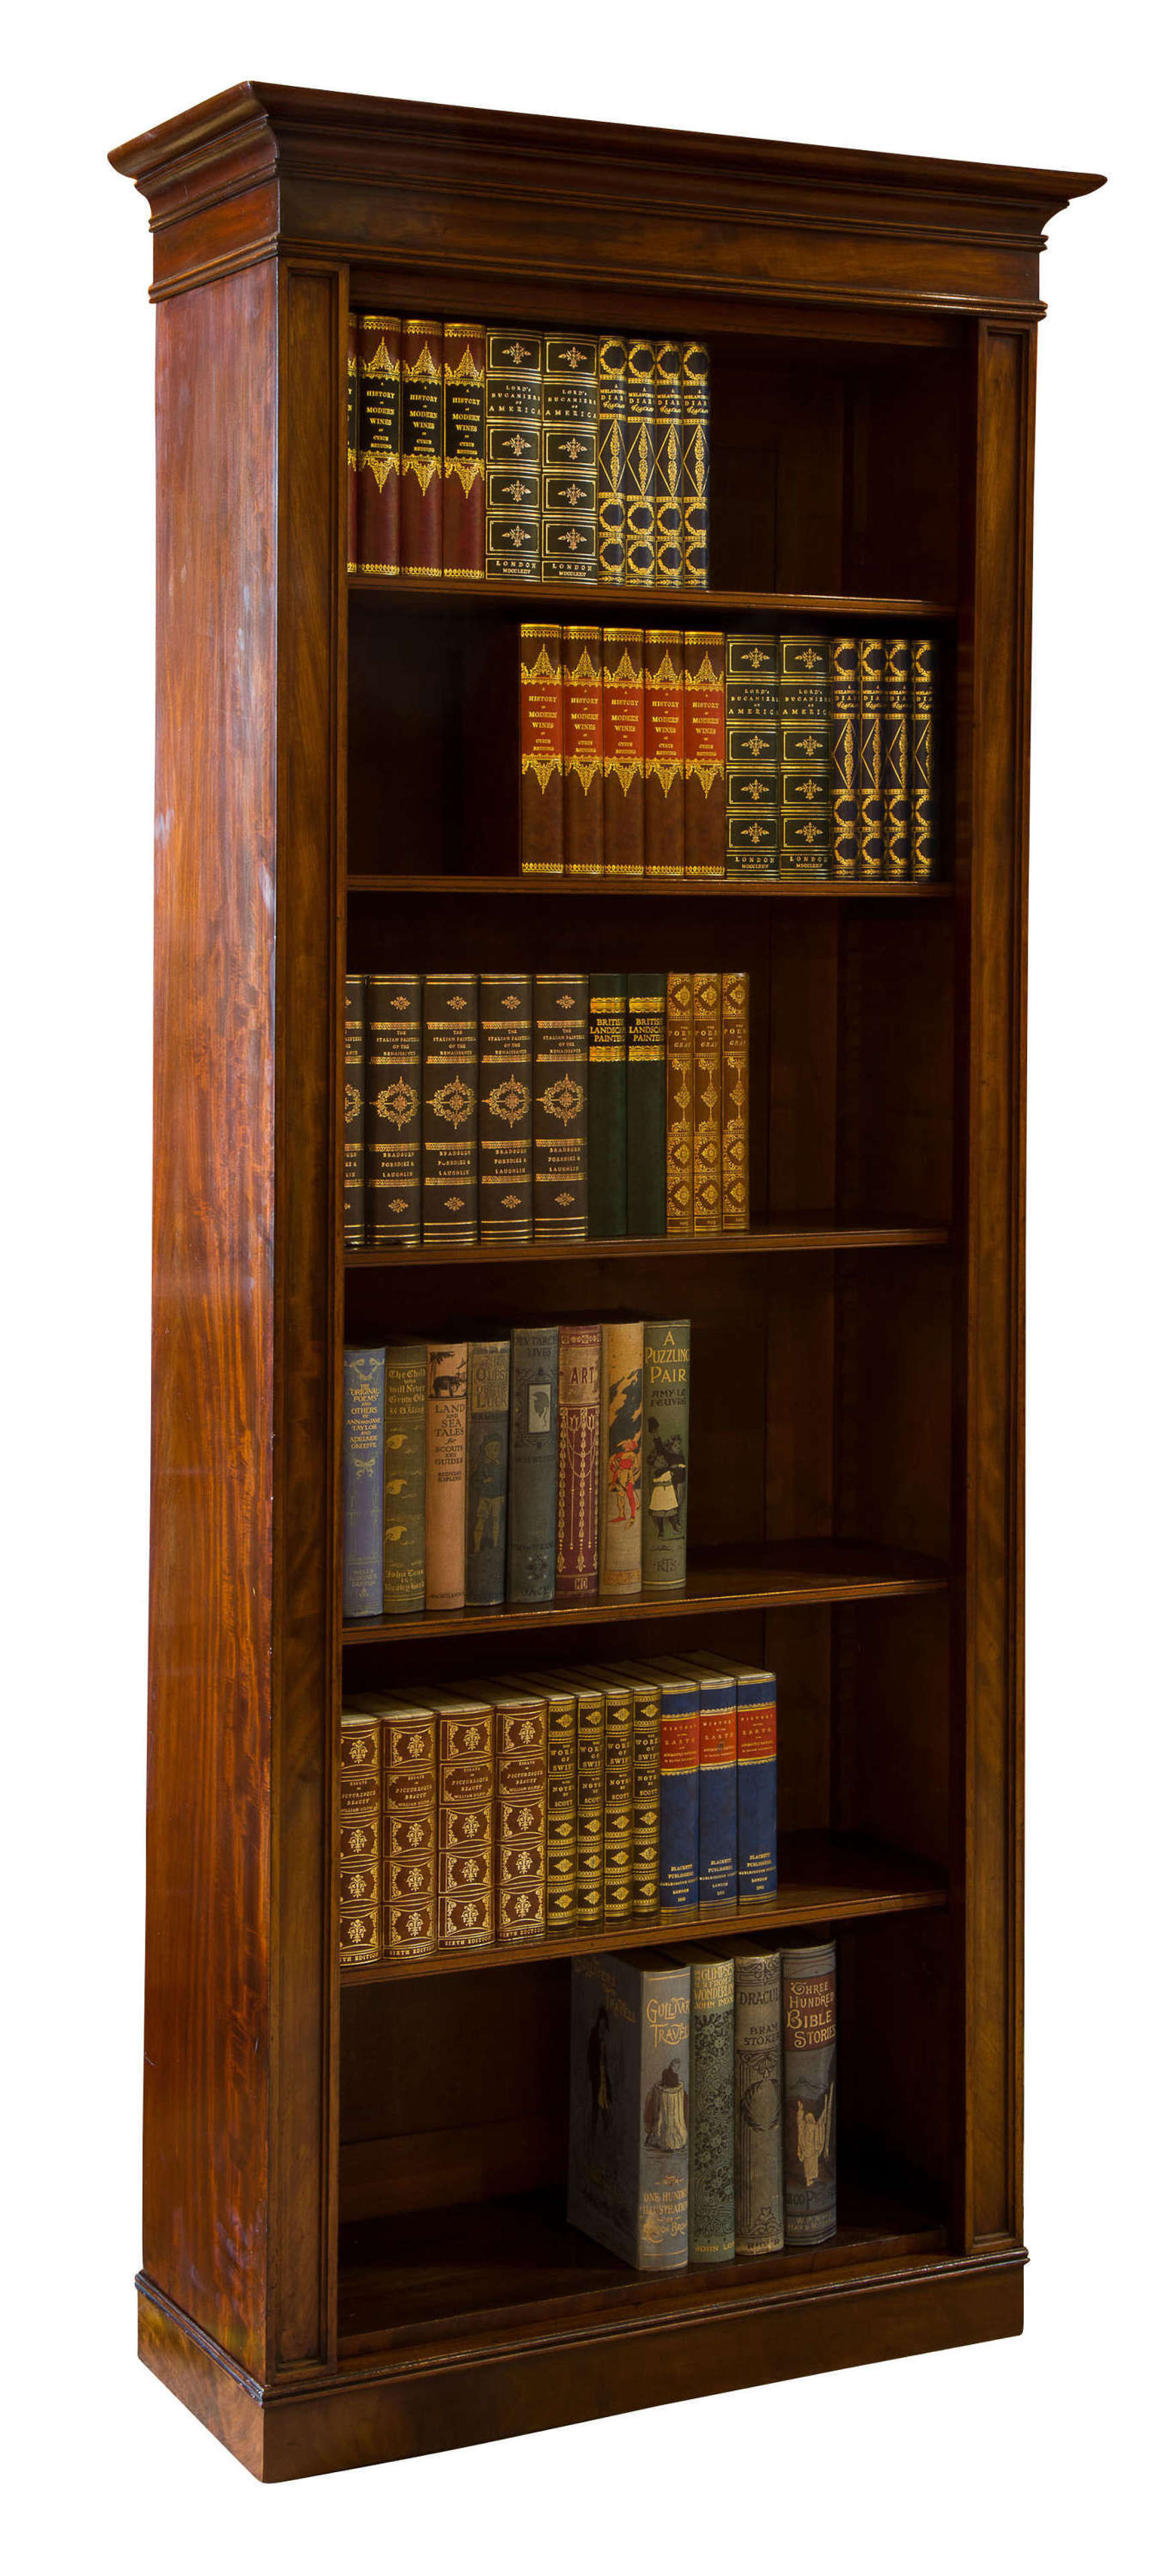 Regency mahogany bookshelves